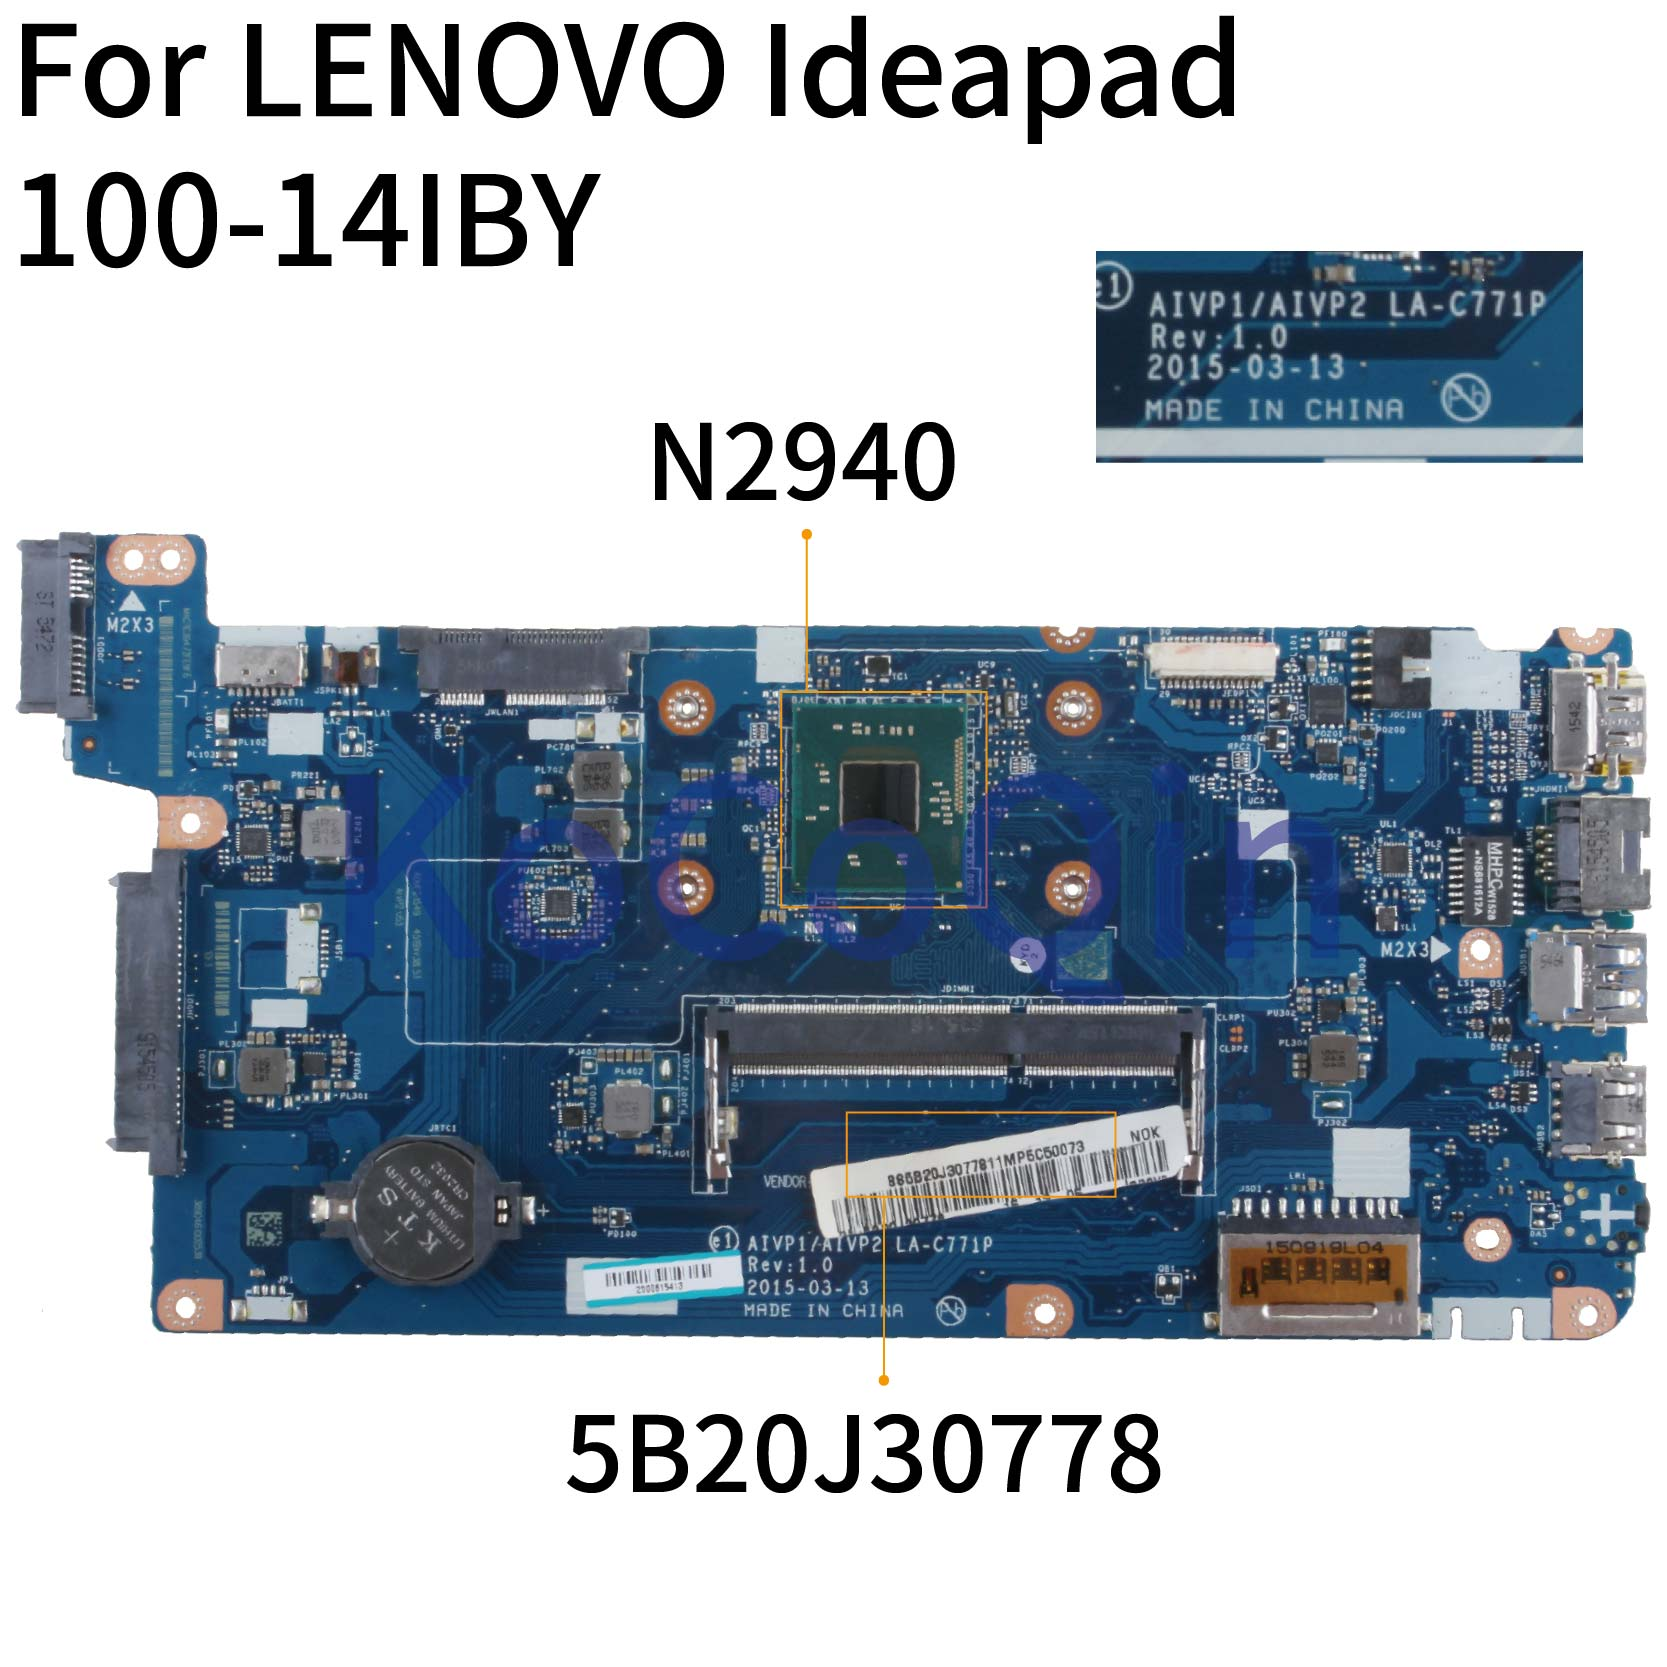 KoCoQin Laptop Motherboard For LENOVO Ideapad 100-14IBY N2840 N2940 Mainboard AIVP1/AIVP2 LA-C771P